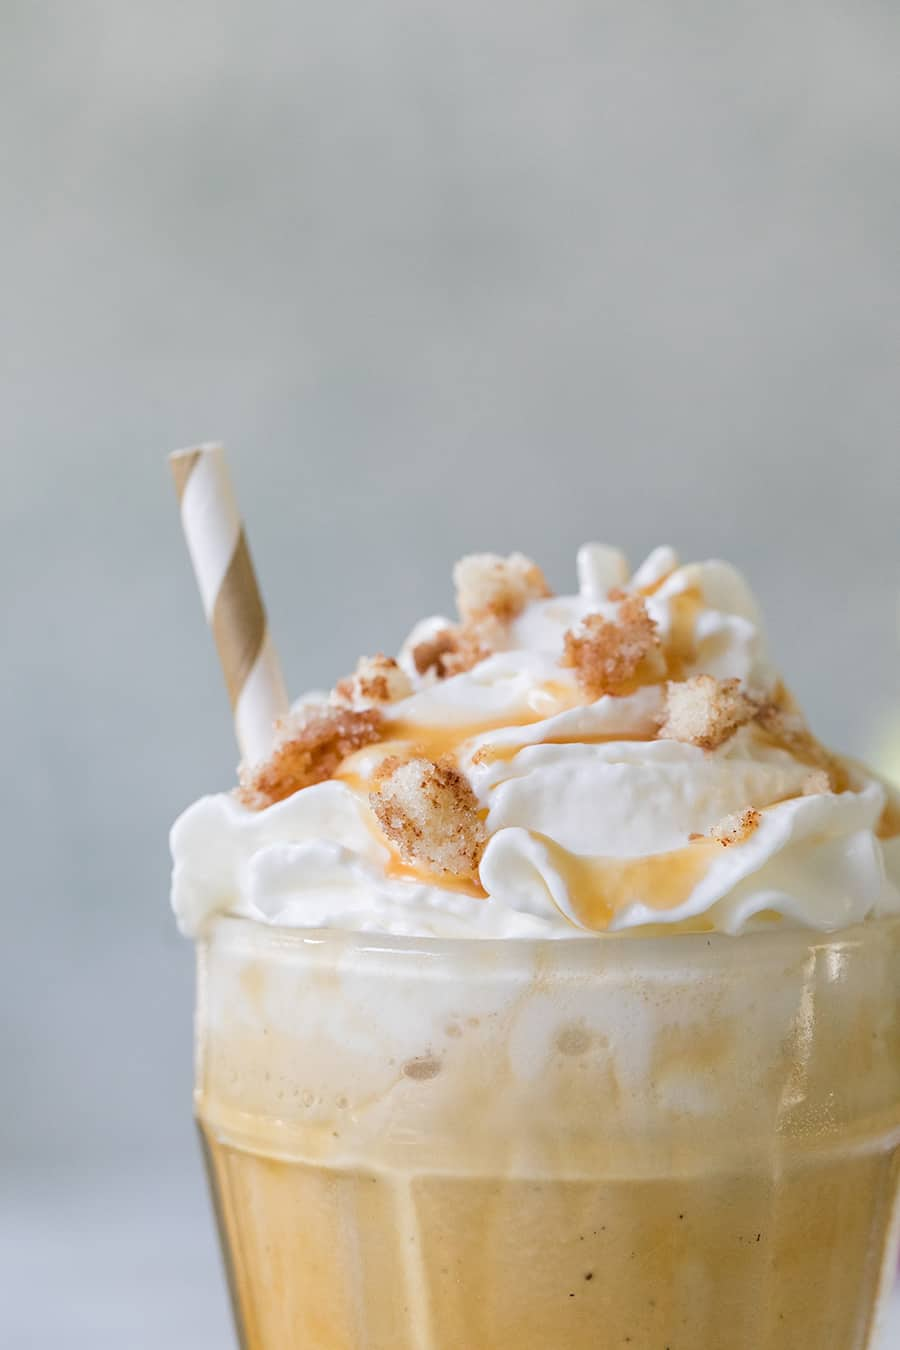 close up picture of a caramel coffee milkshake, with whipped cream and caramel on the top